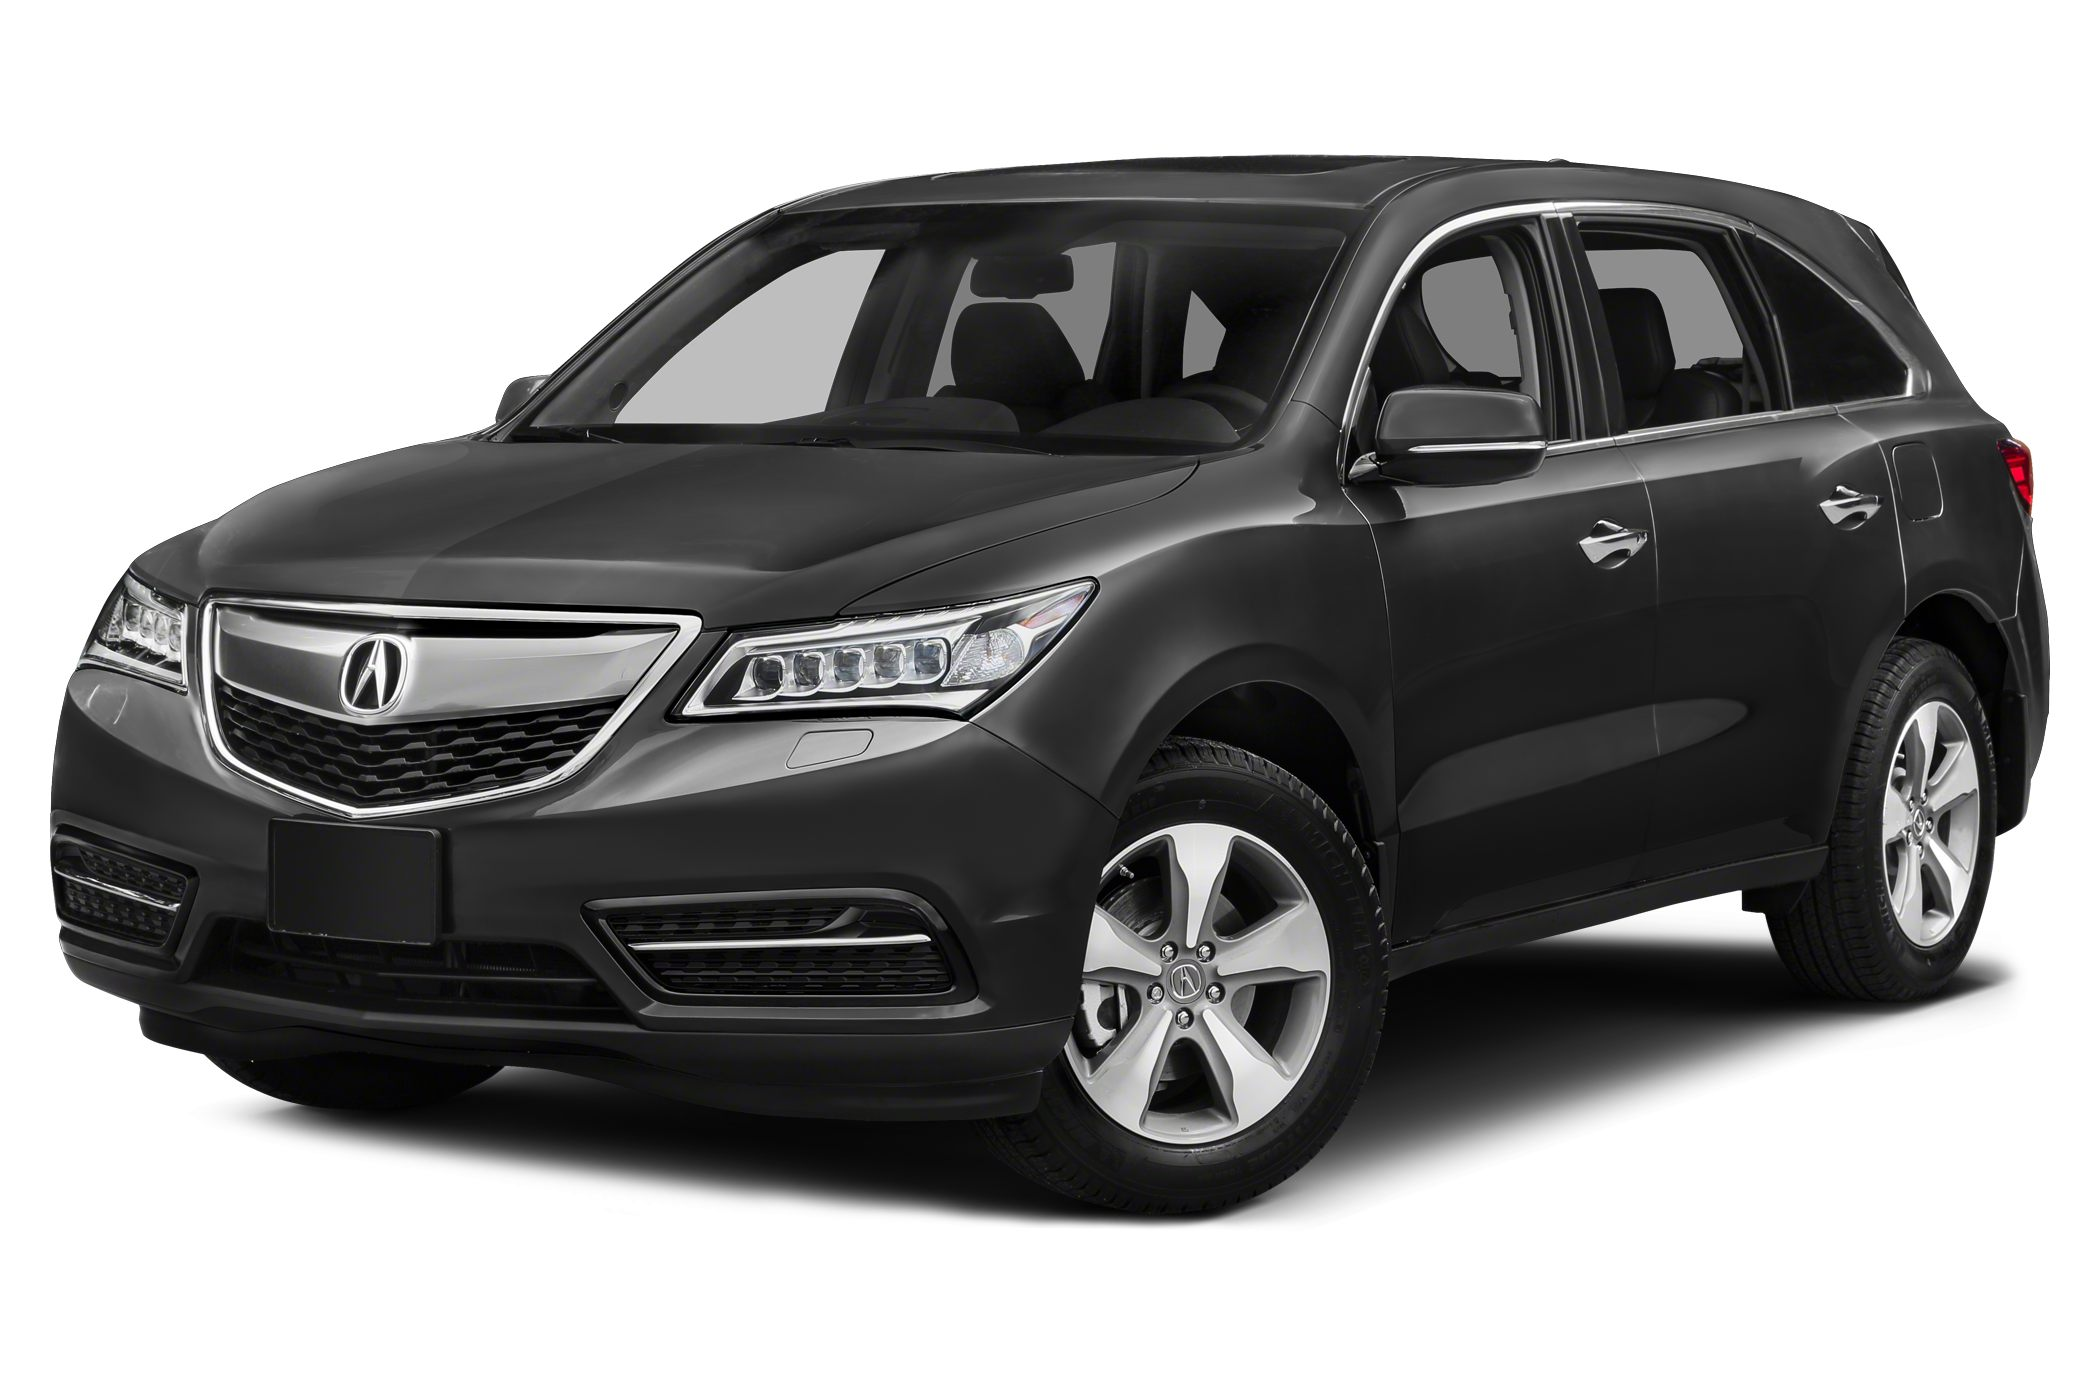 2014 Acura MDX 3.5L SUV for sale in Shreveport for $0 with 11,000 miles